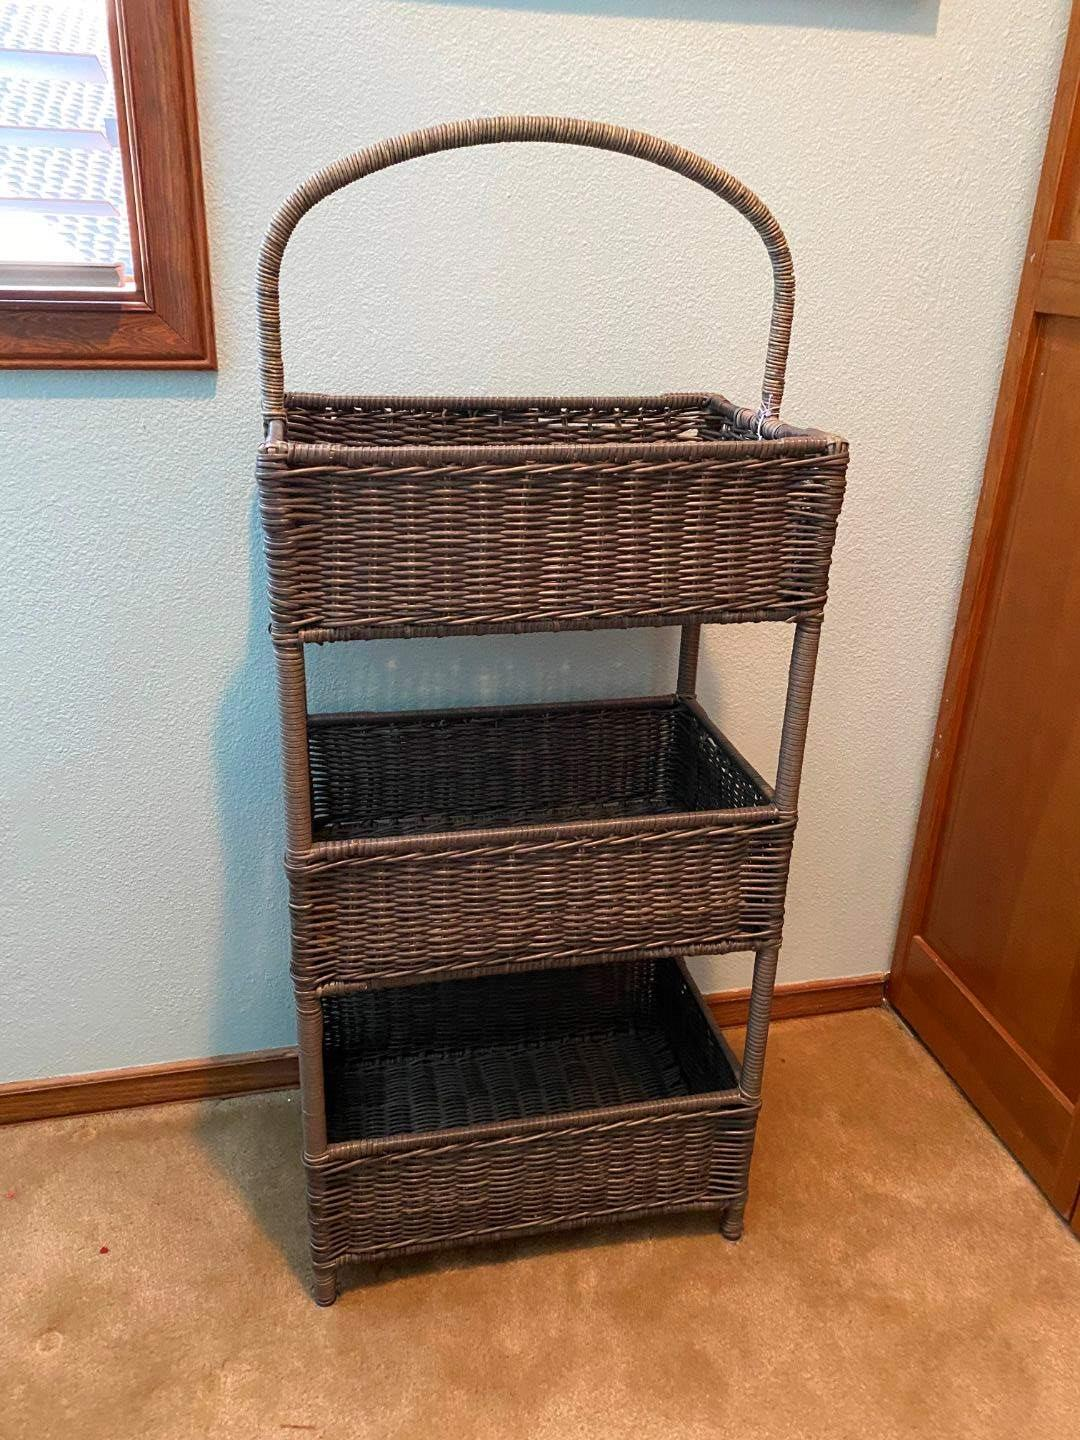 Lot # 117 - Cute 3 Tier Basket from Pier 1 Imports (main image)